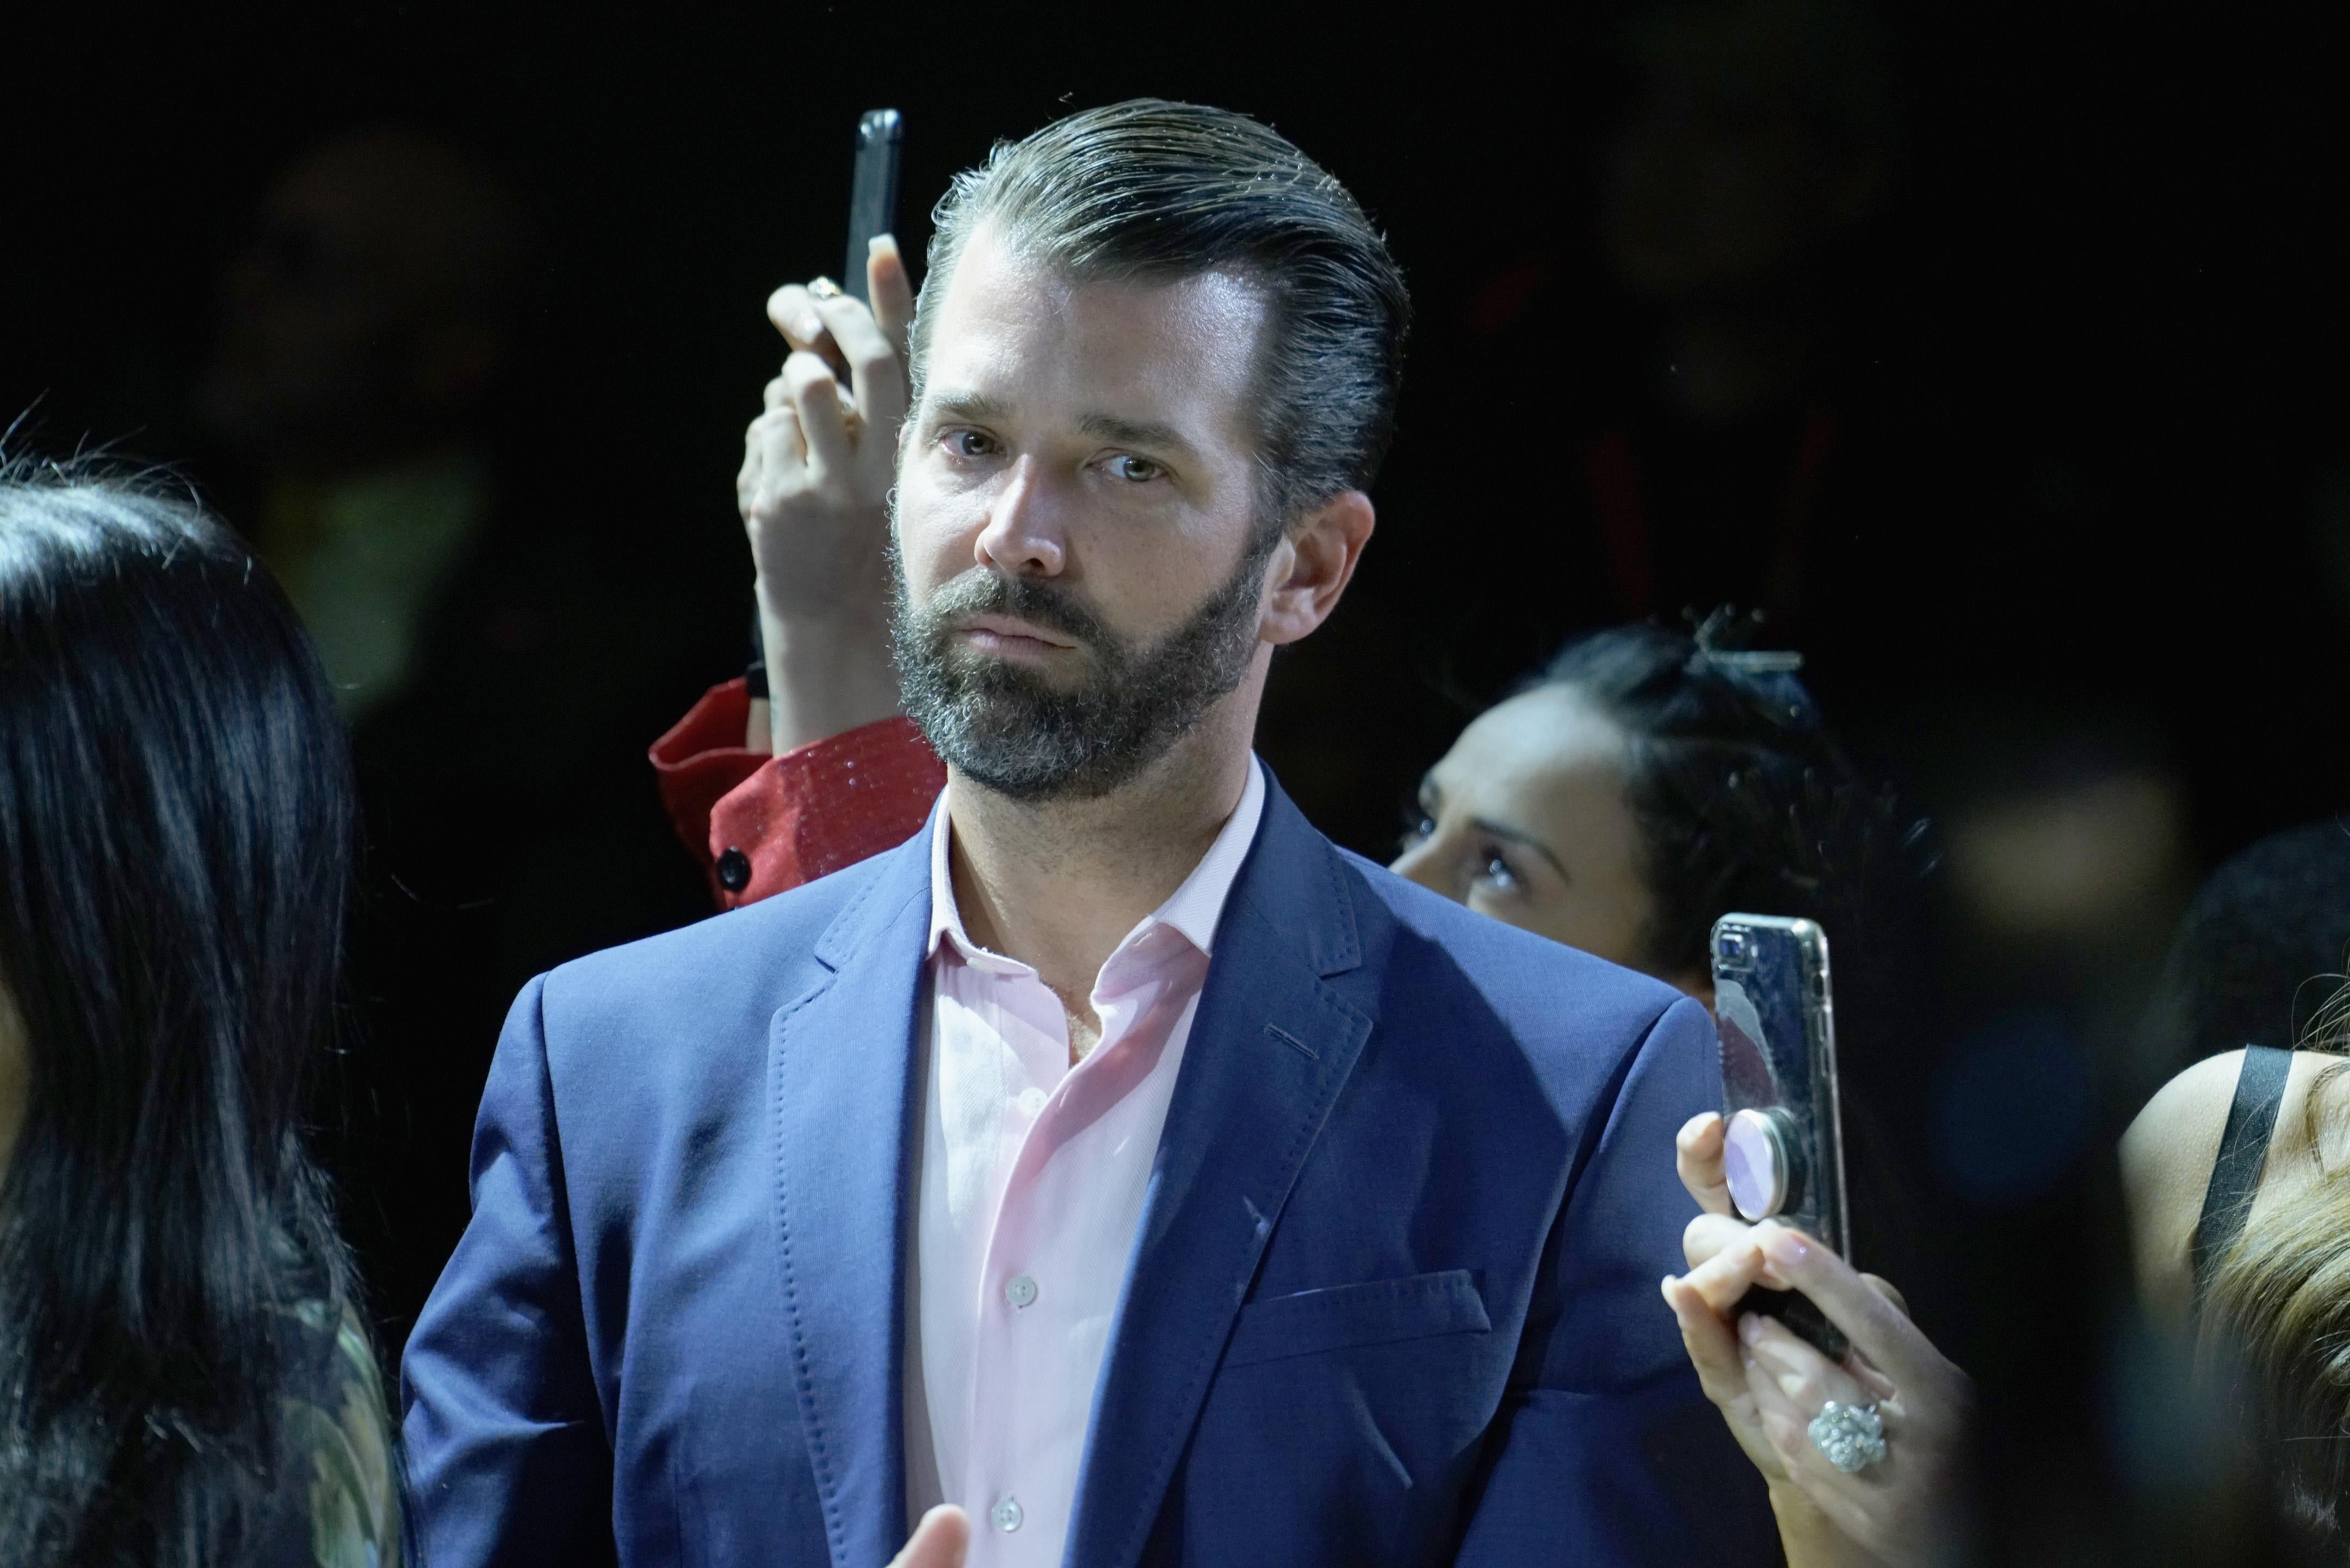 Donald Trump Jr. attends New York Fashion Week: The Shows at Spring Studios on February 13, 2019 in New York City.